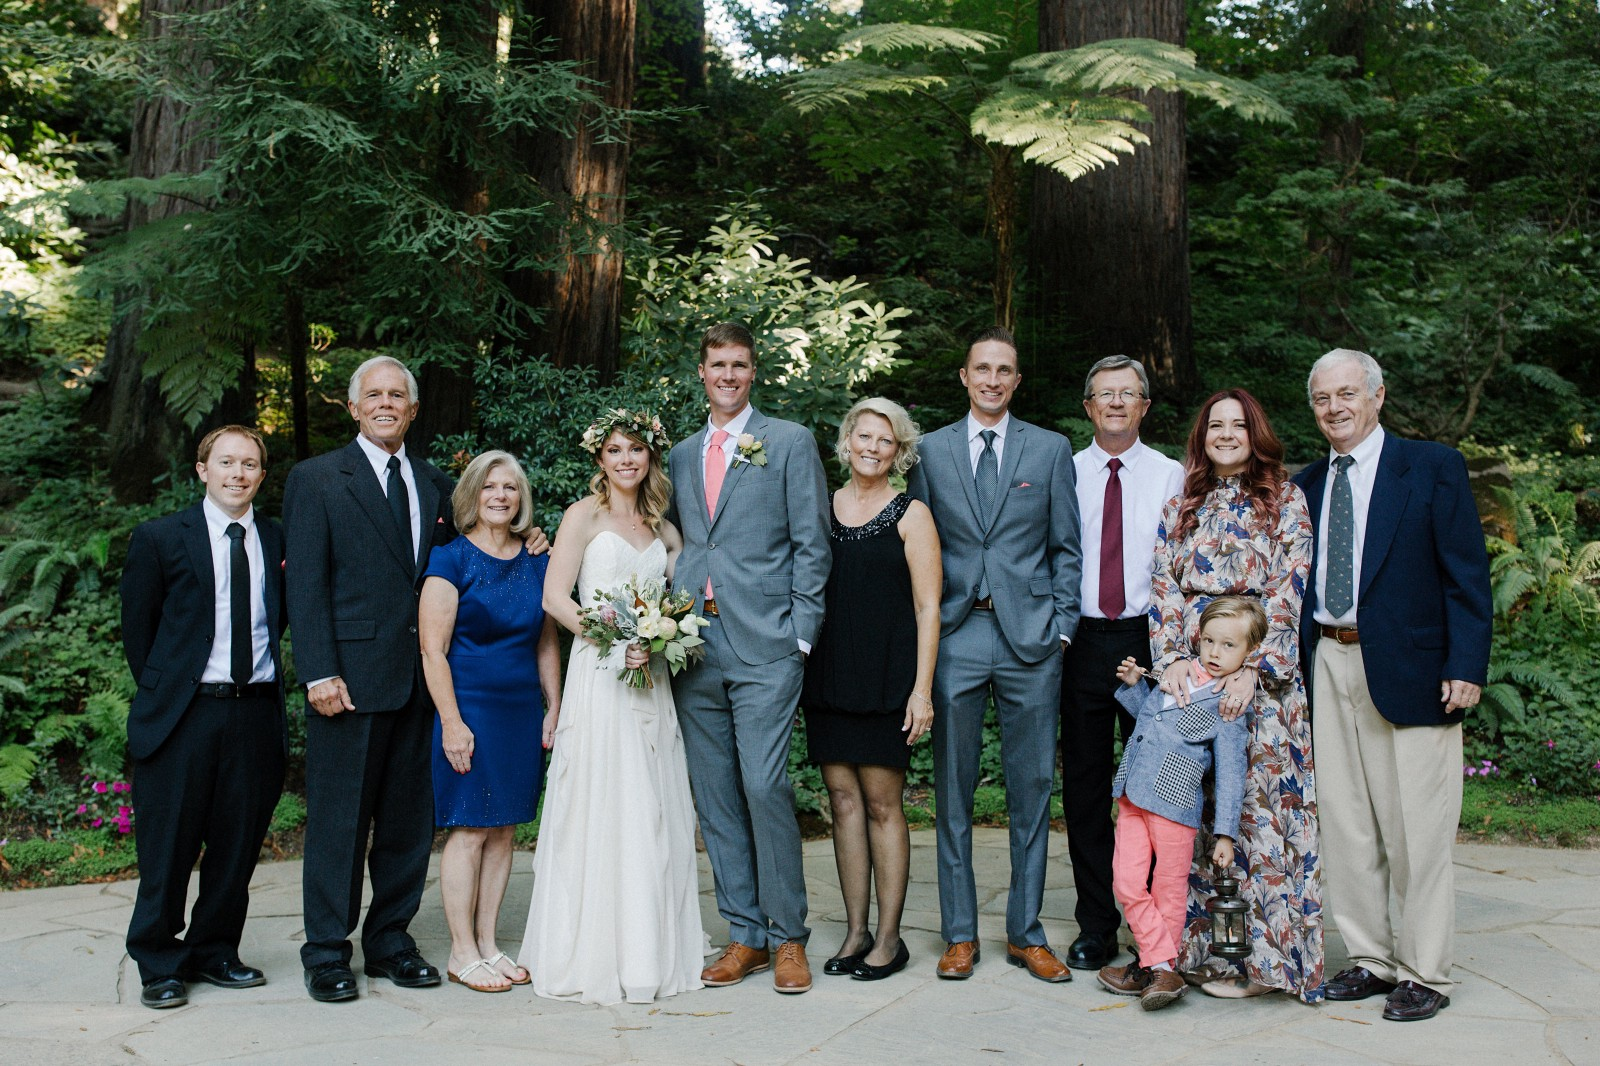 A Wedding Party in Coral & Gray – Linzi Berry – Medium